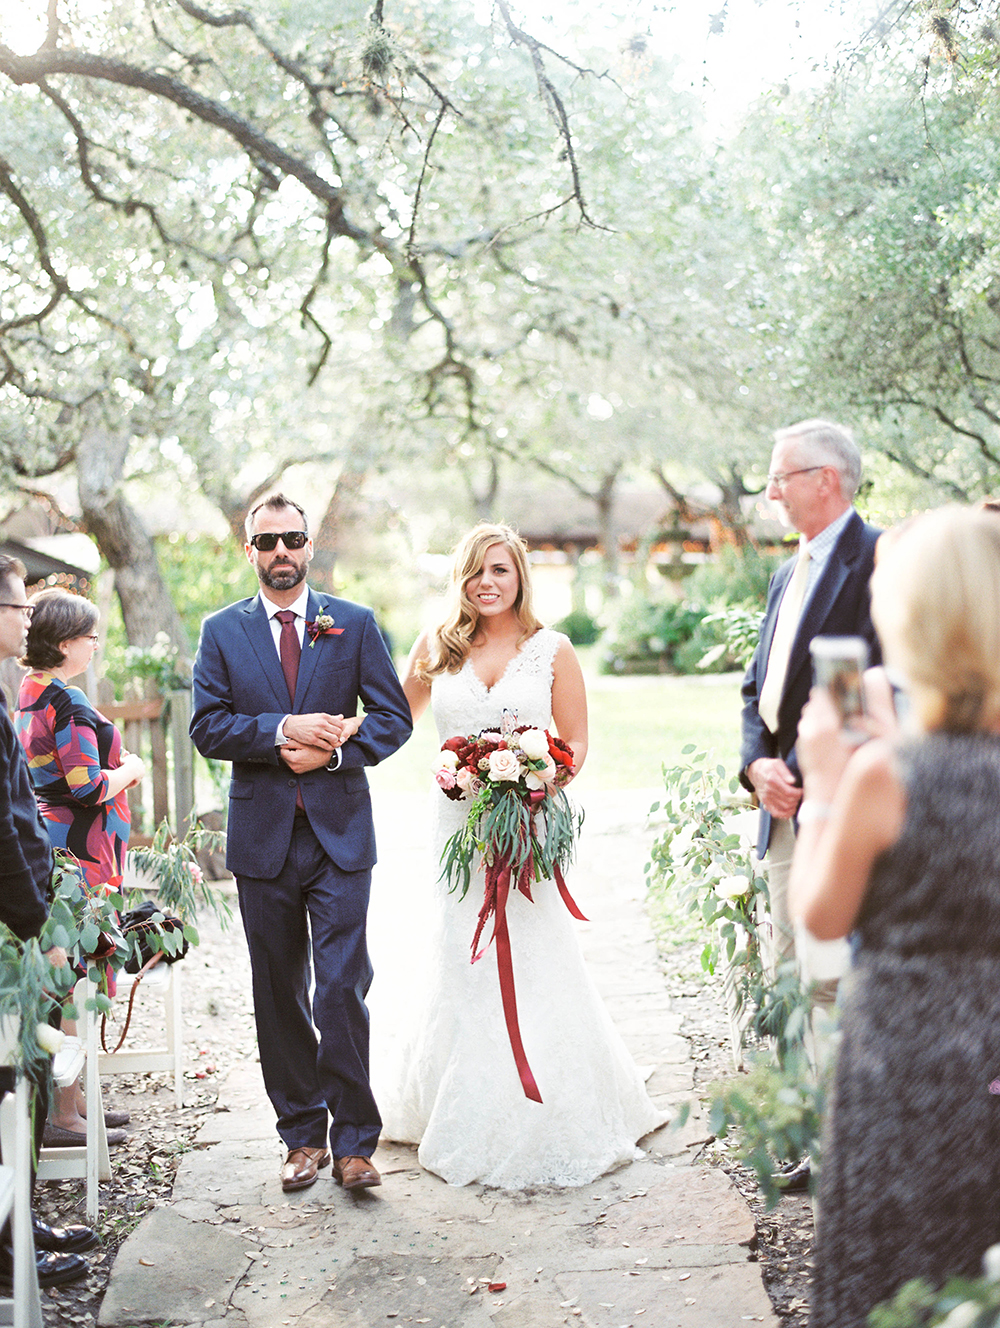 ceremony processionals - photo by Honey Gem Creative https://ruffledblog.com/hill-country-garden-wedding